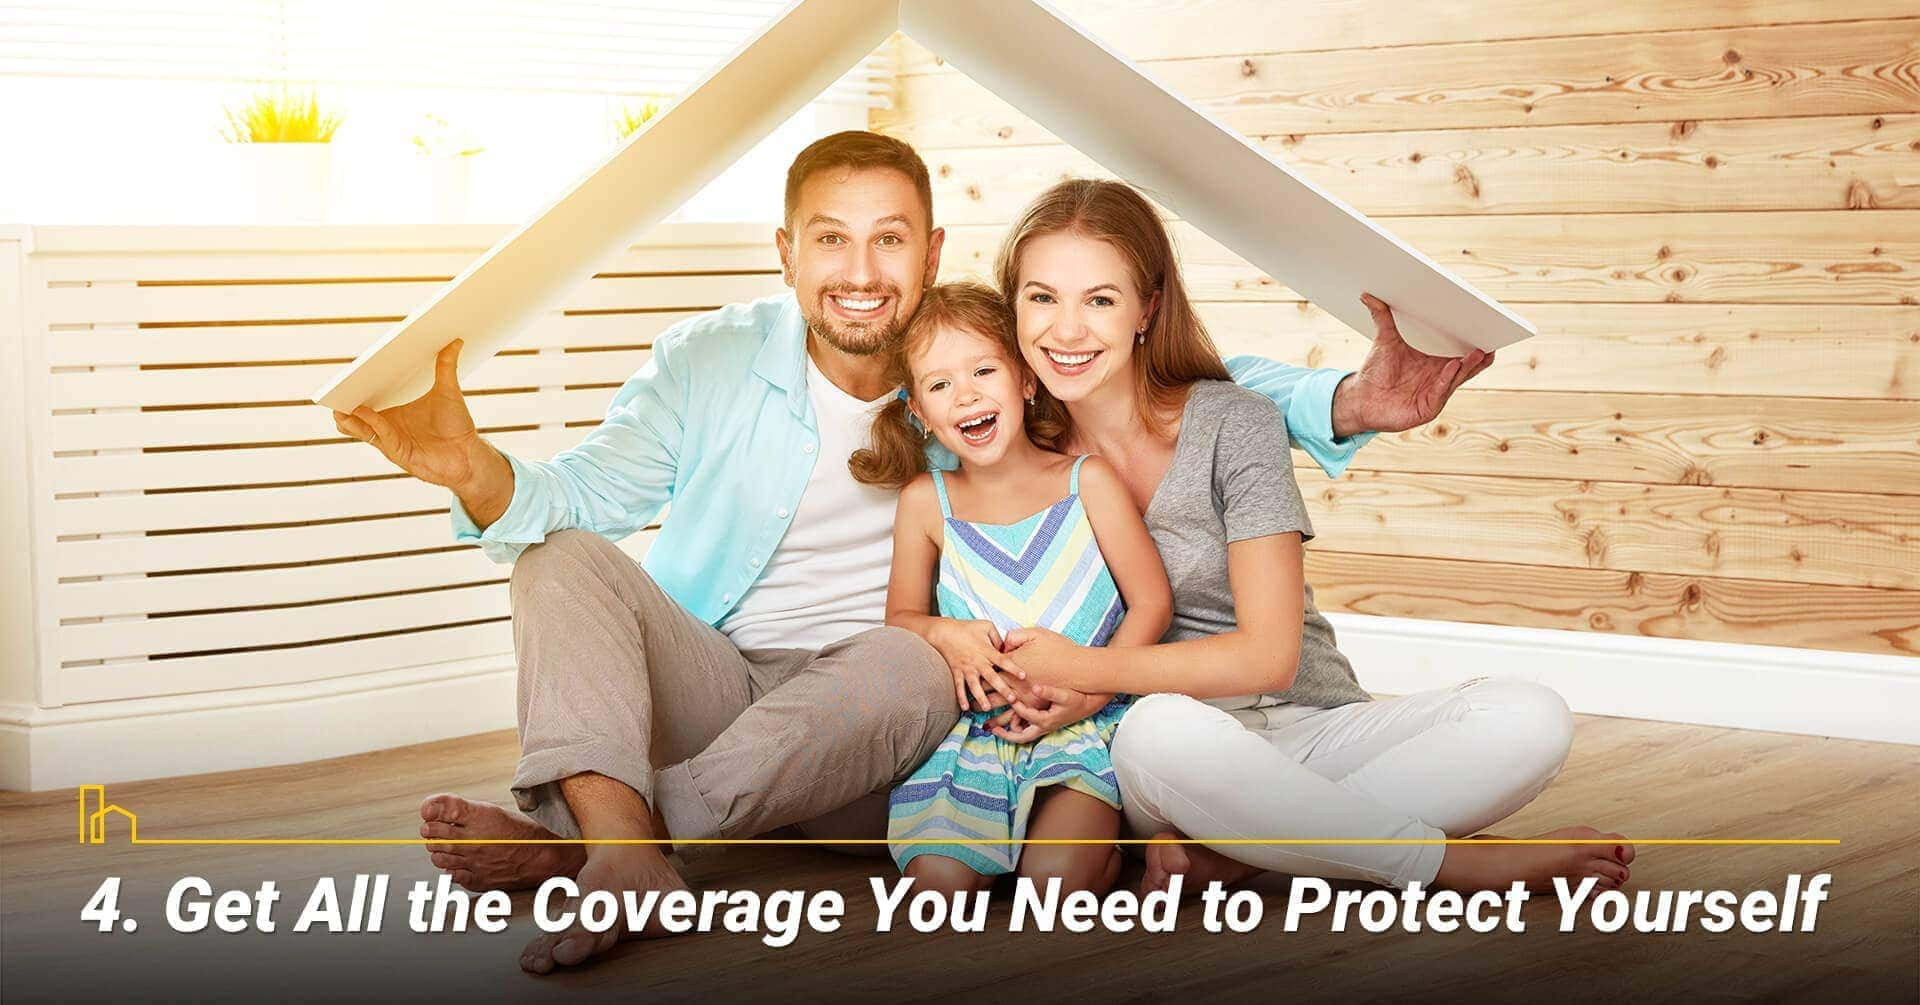 Get All the Coverage You Need to Protect Yourself, make sure you are protected